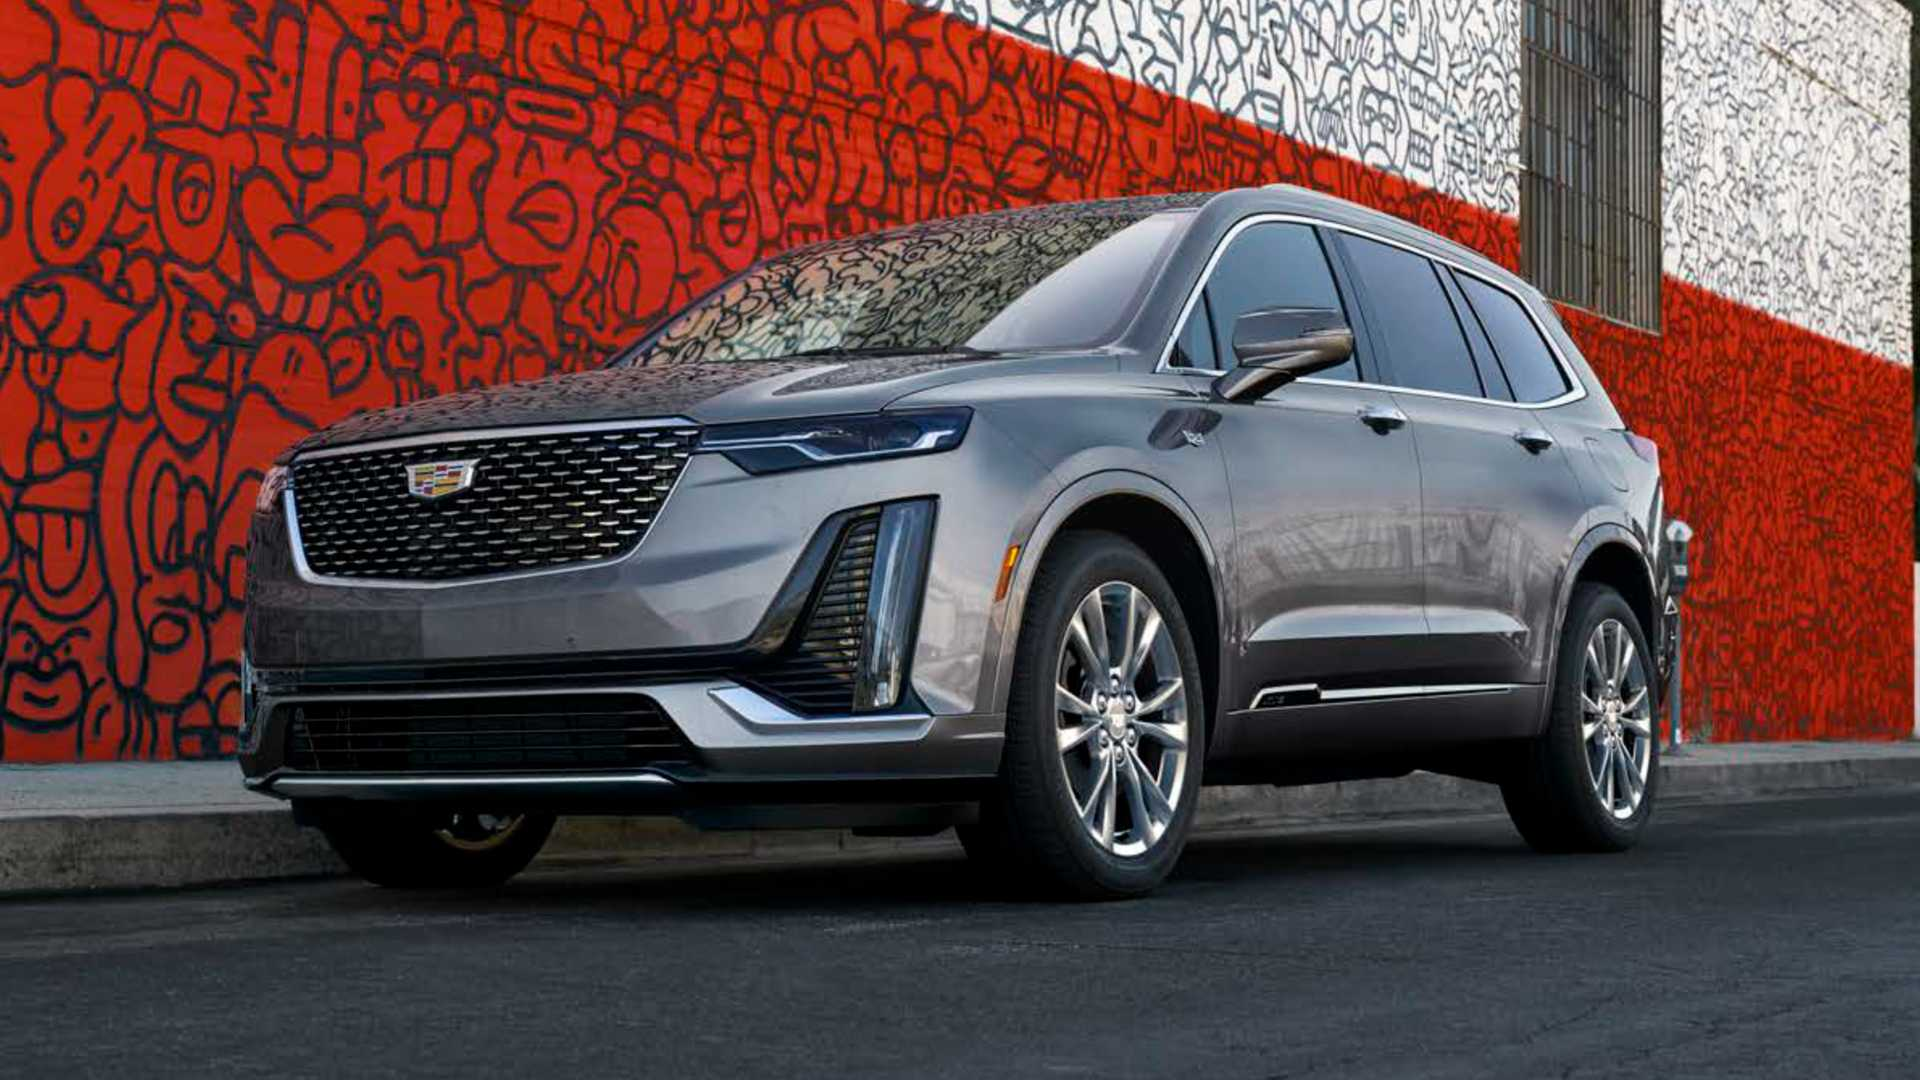 2021 cadillac xt6 arrives with new cheaper luxury trim